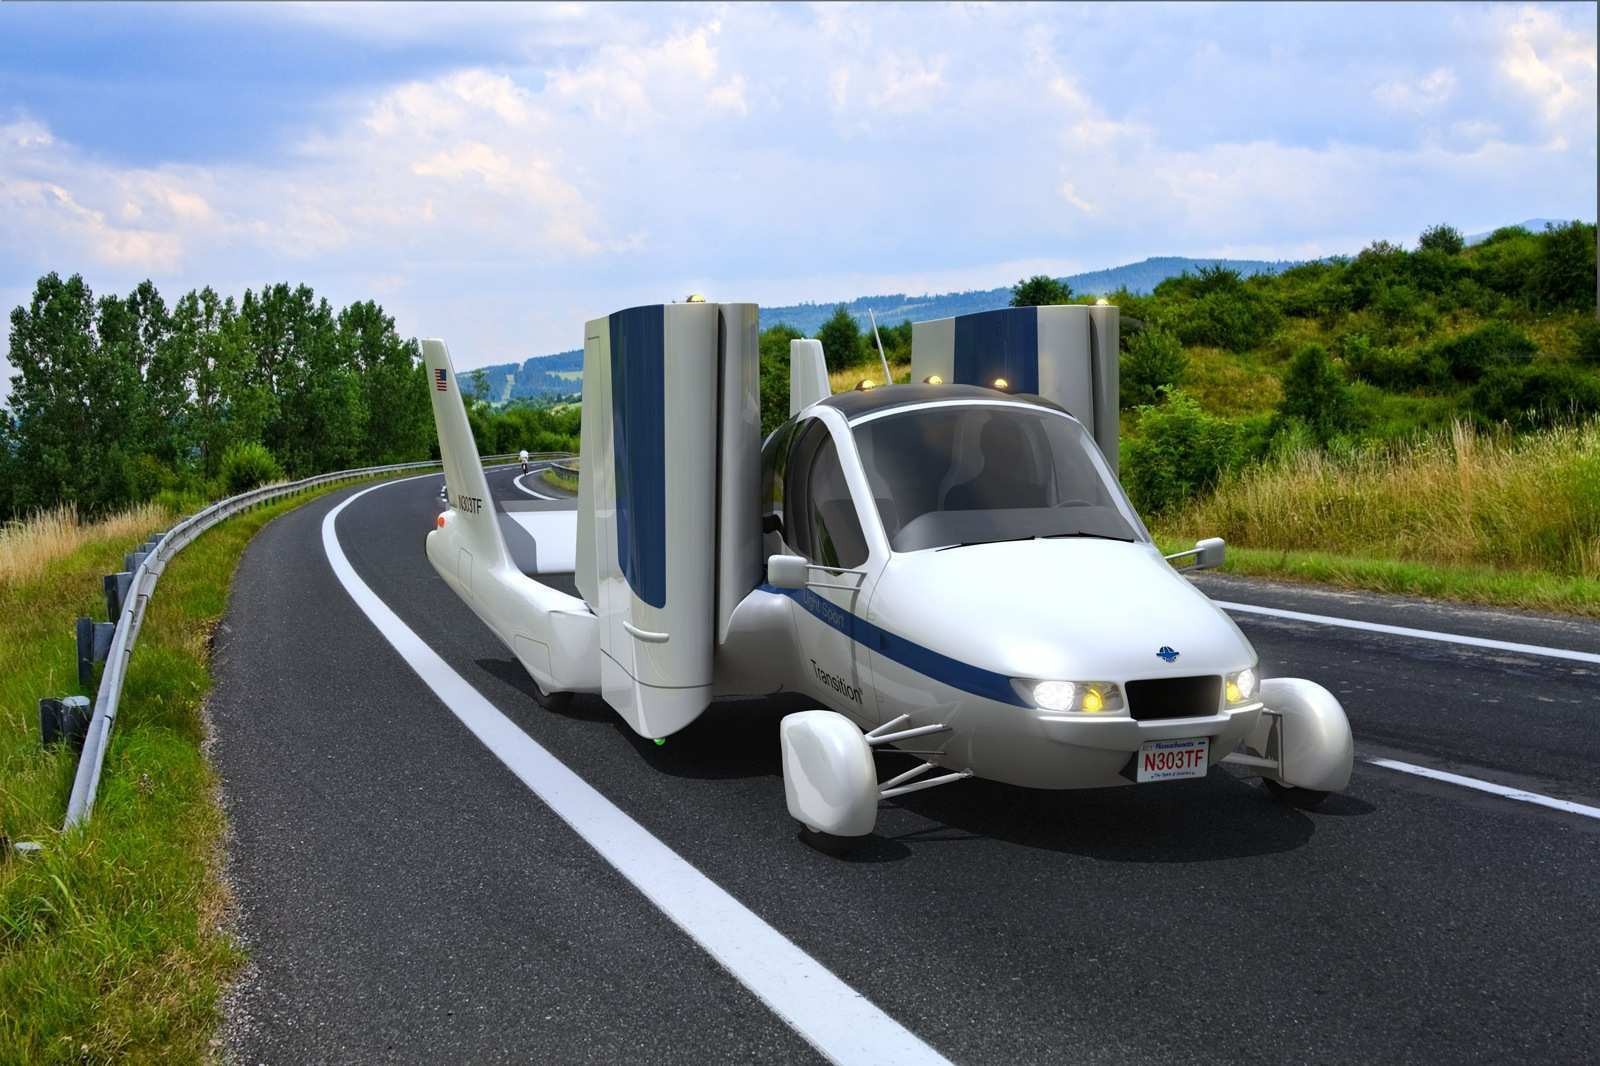 40 Best Review The Volvo Flying Car 2019 Engine Specs and Review with The Volvo Flying Car 2019 Engine